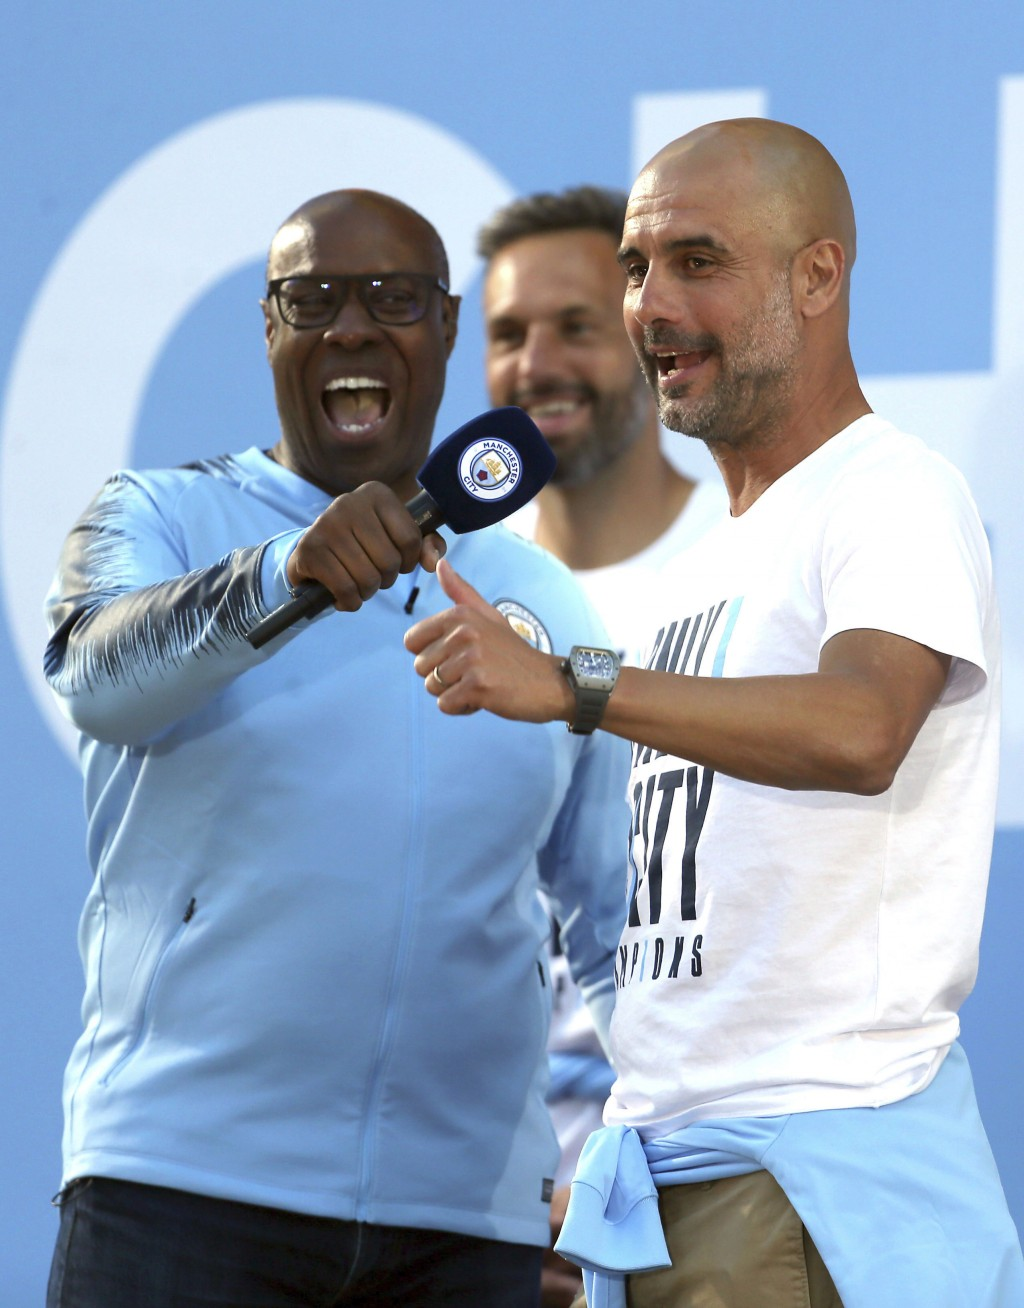 Manchester City soccer team manager Pep Guardiola, right, acknowledges supporters during the British Premier League champions trophy parade in Manches